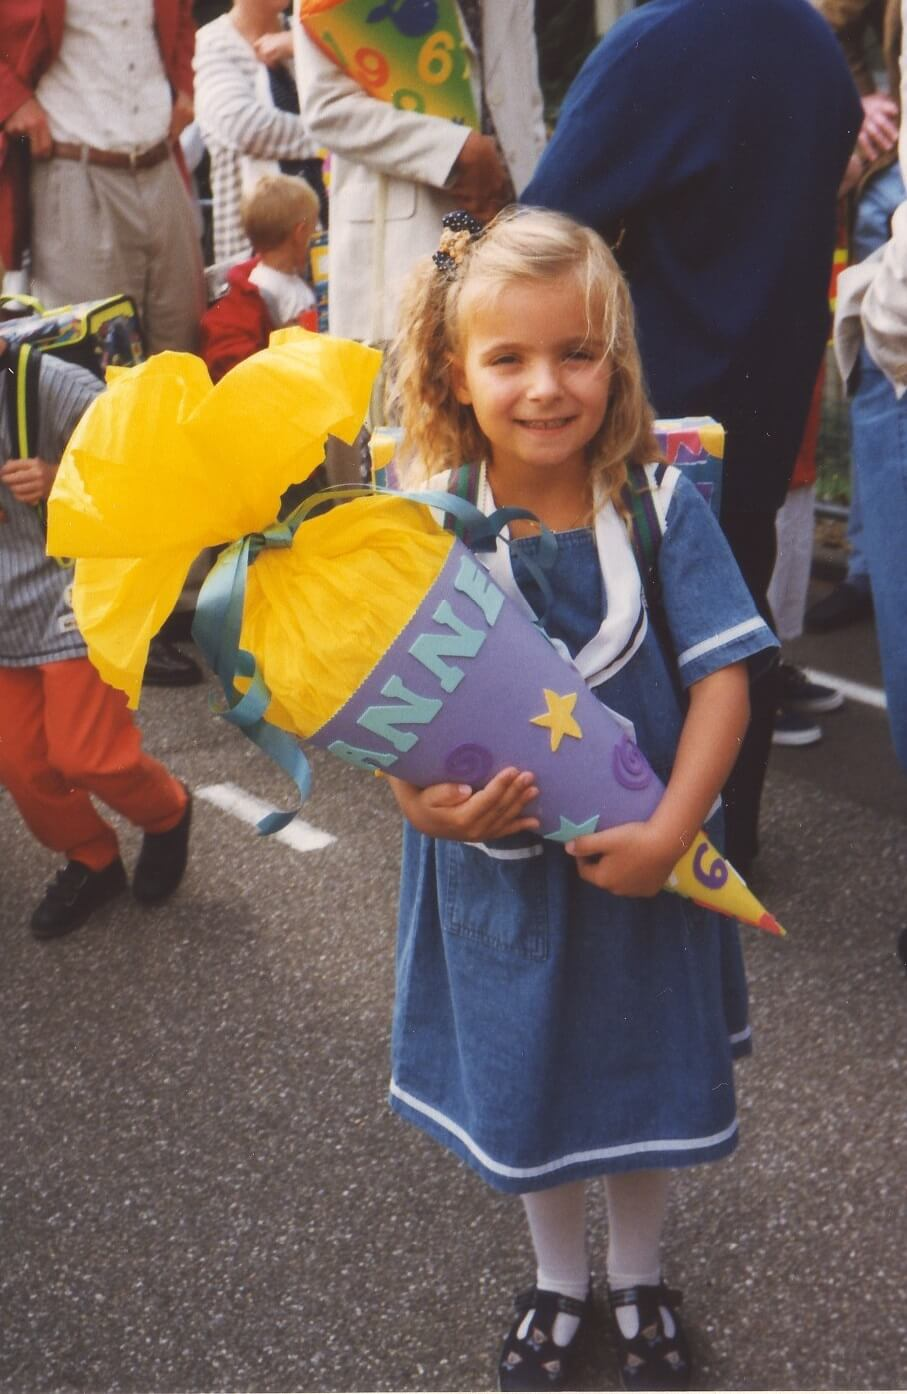 A young girl with blonde hair holds a Schultüte (paper cone) in front of a crowd of people.